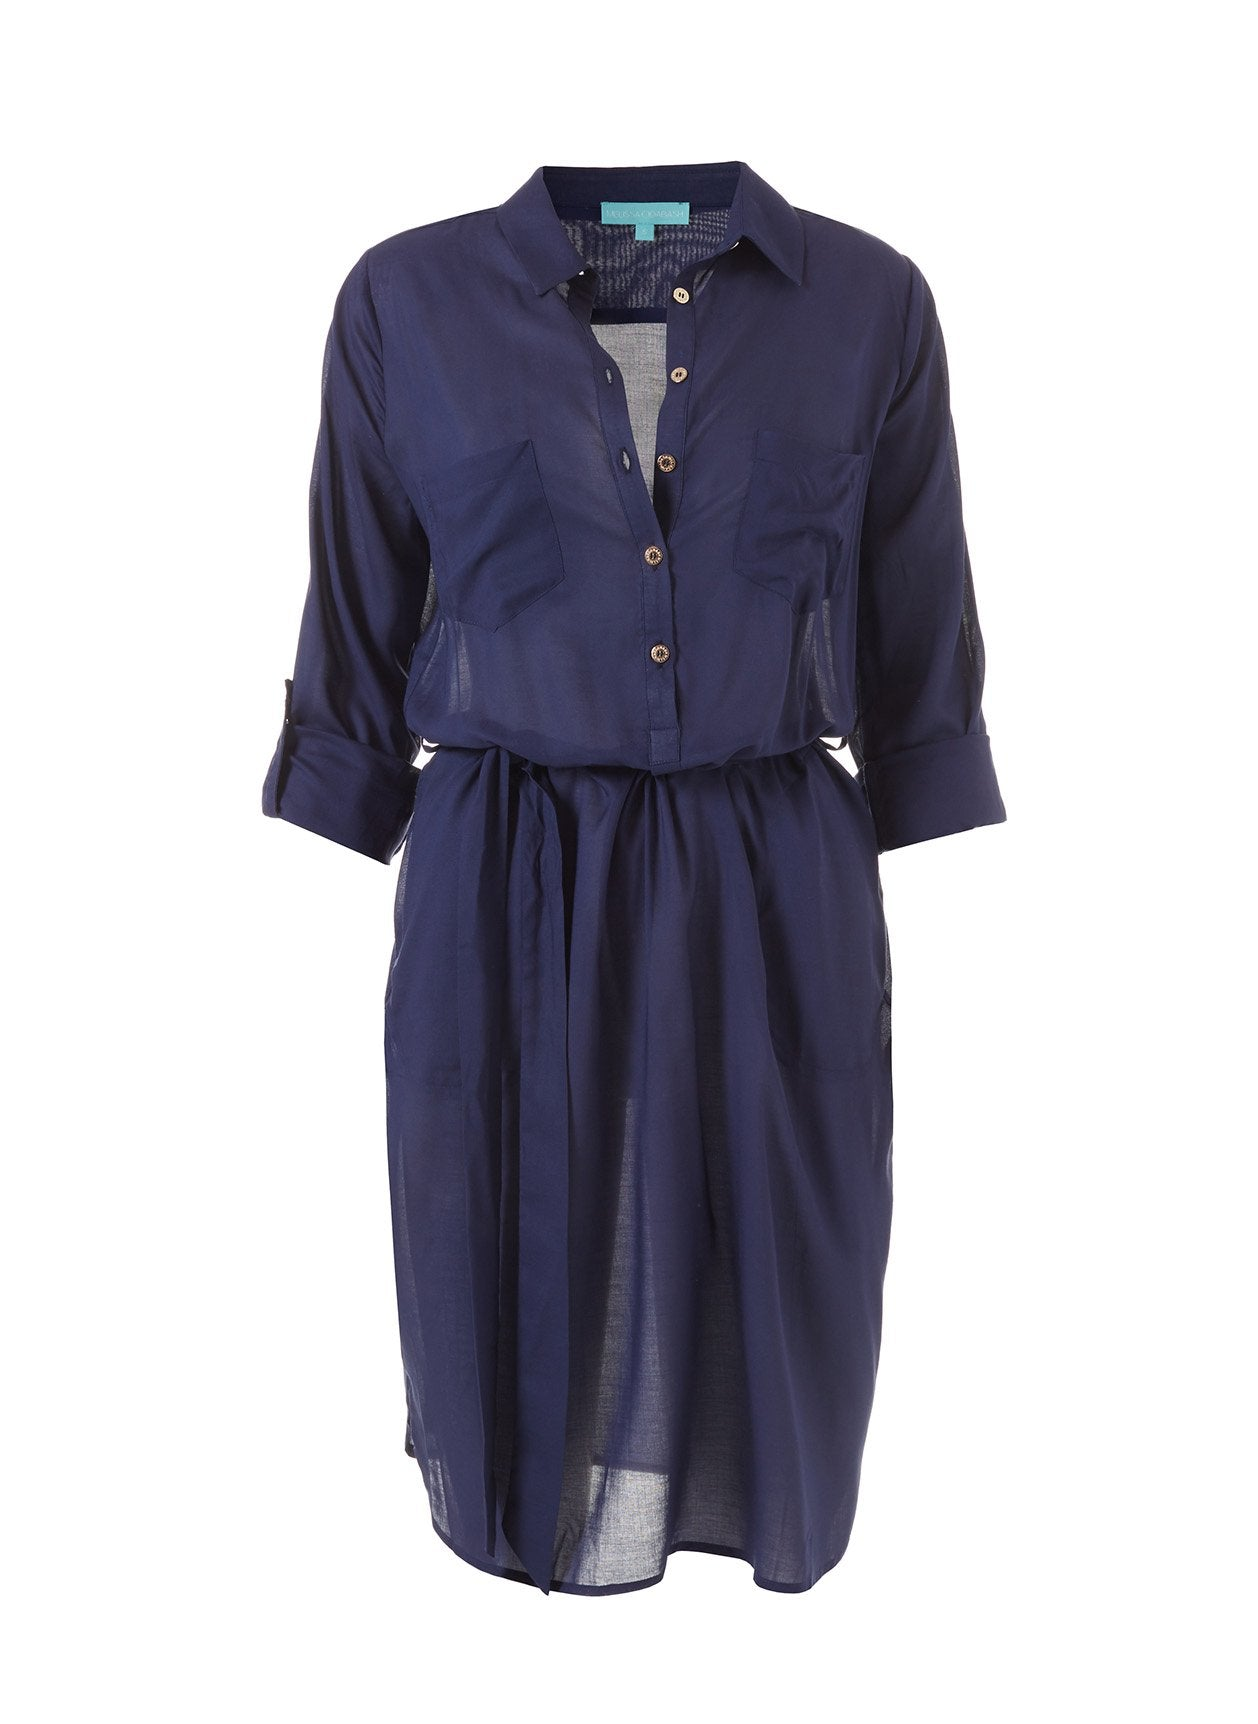 Lois Navy Button-Down Belted Shirt Dress 2020